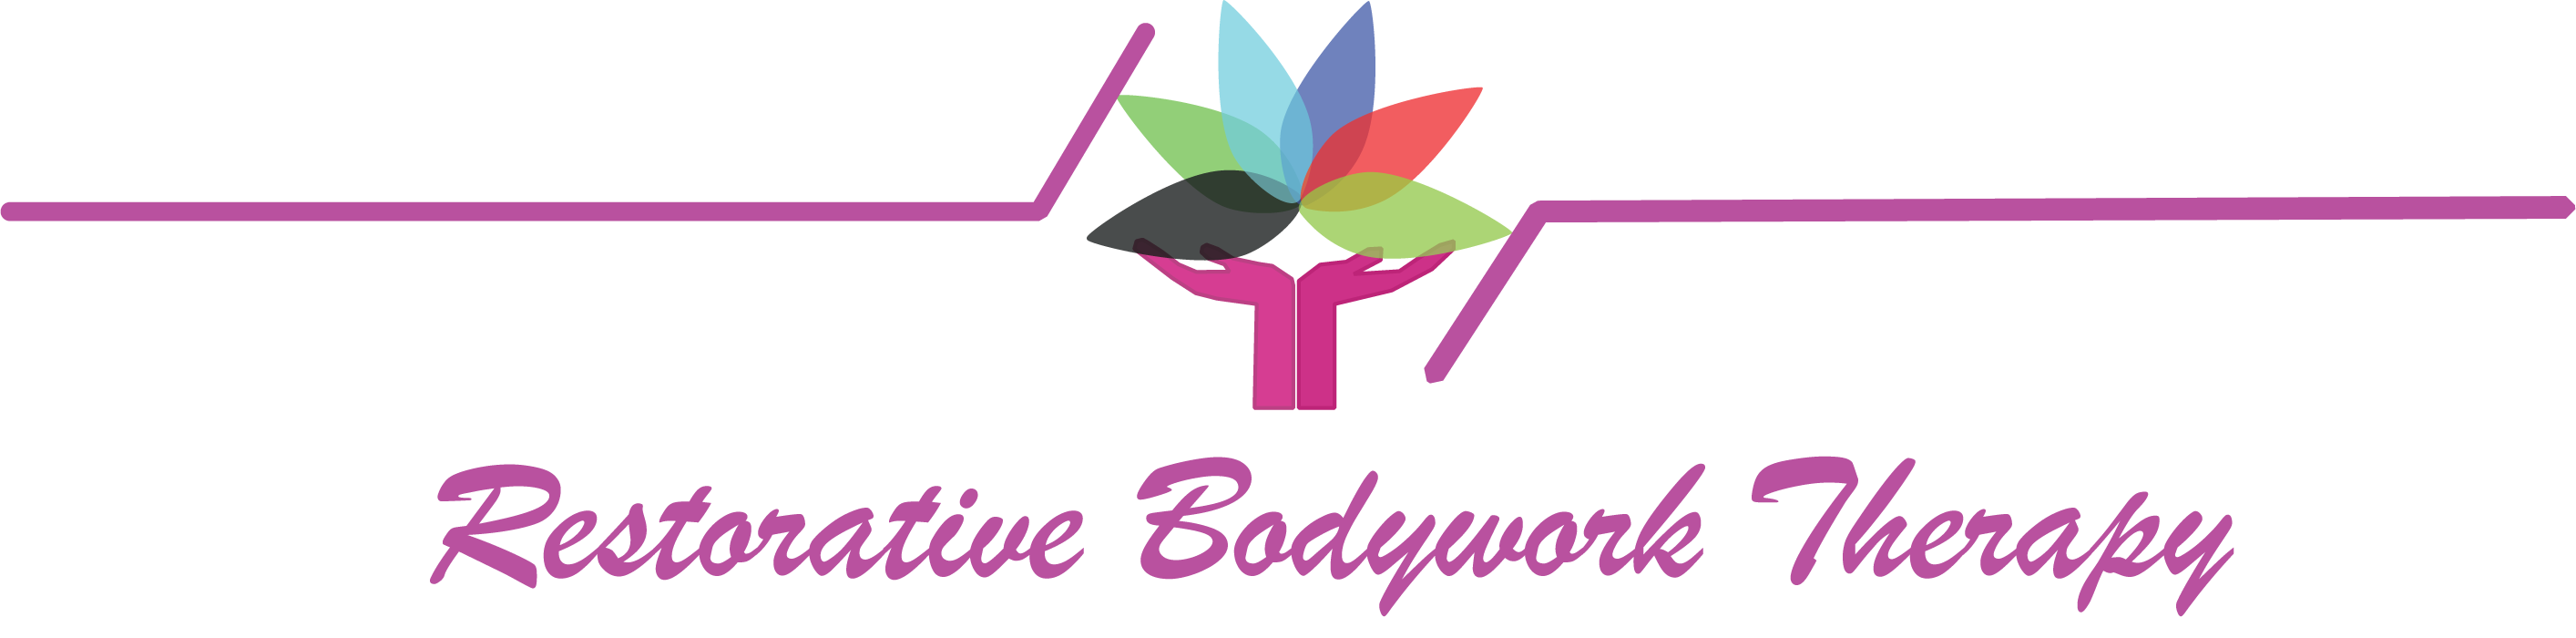 Restorative Bodywork Therapy